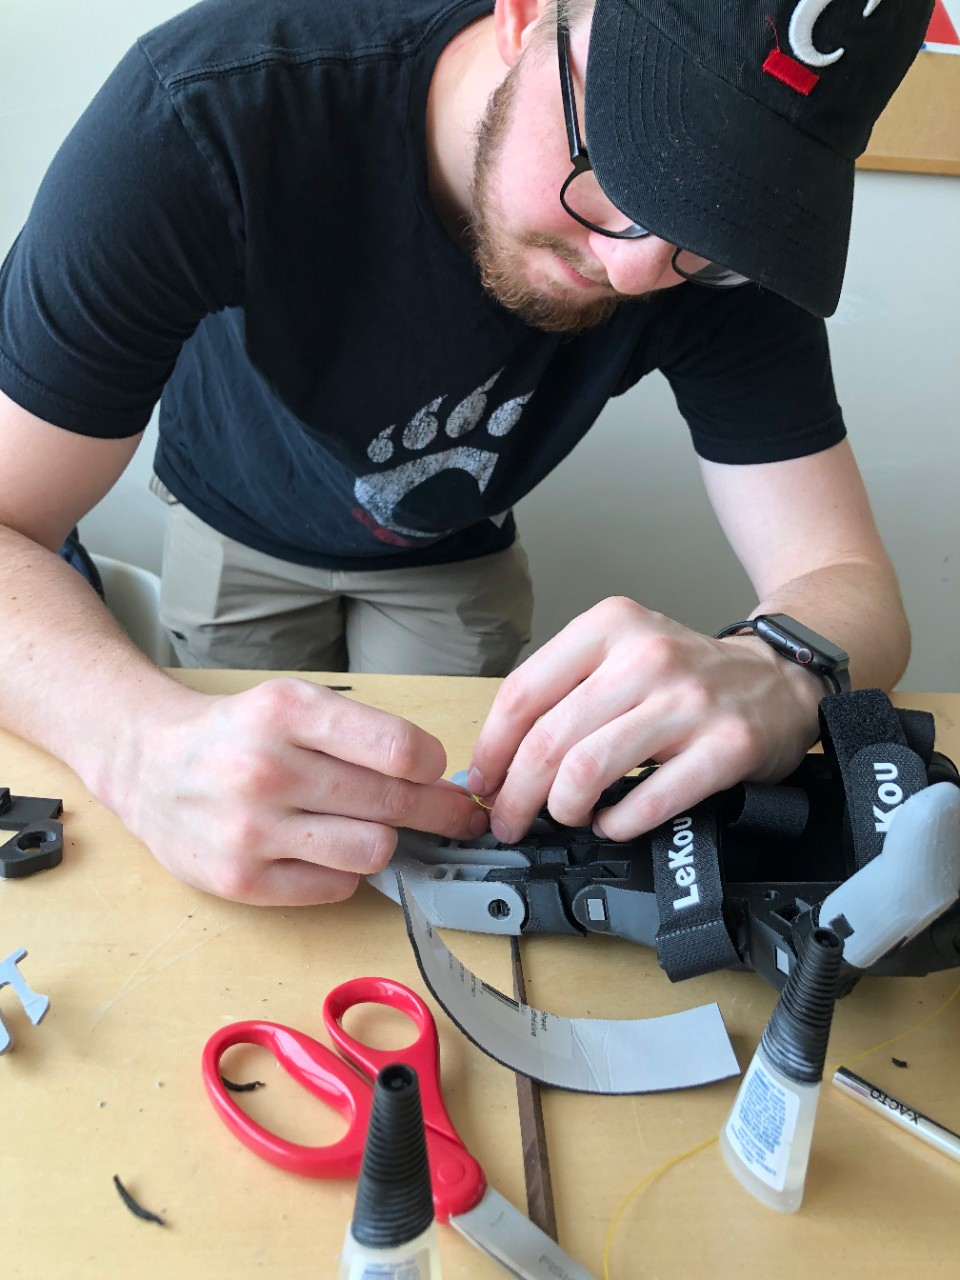 Andrew working on a mechanism